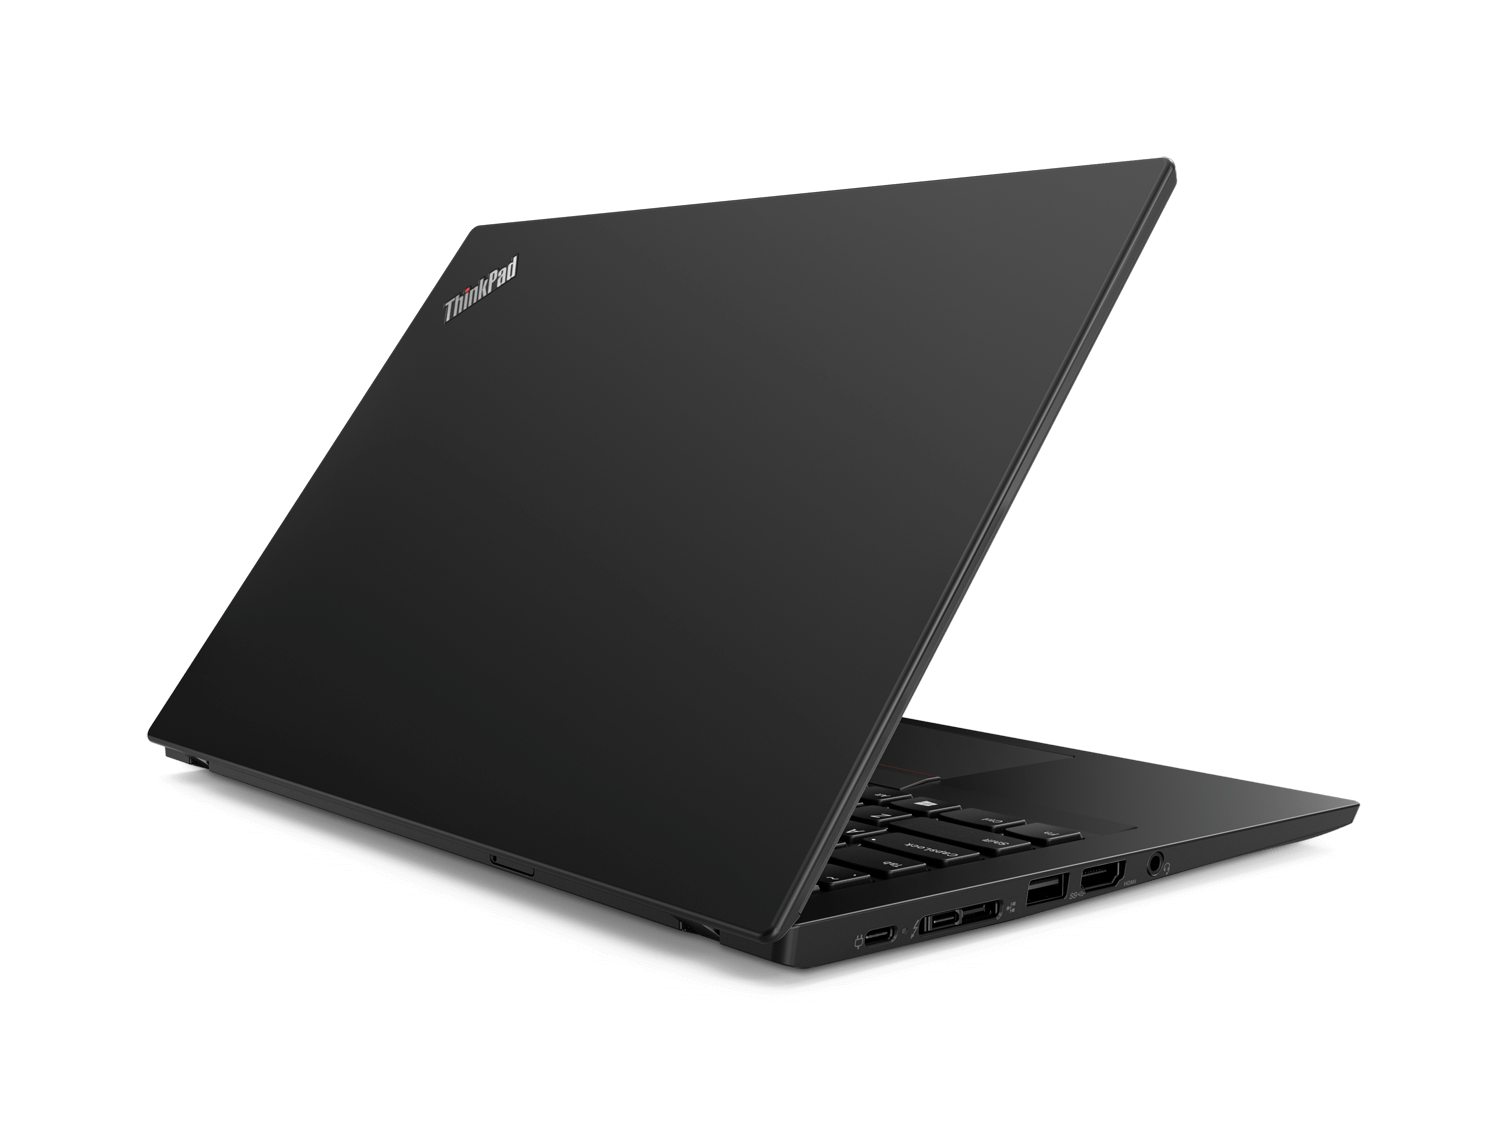 Lenovo ThinkPad X280 Yoga